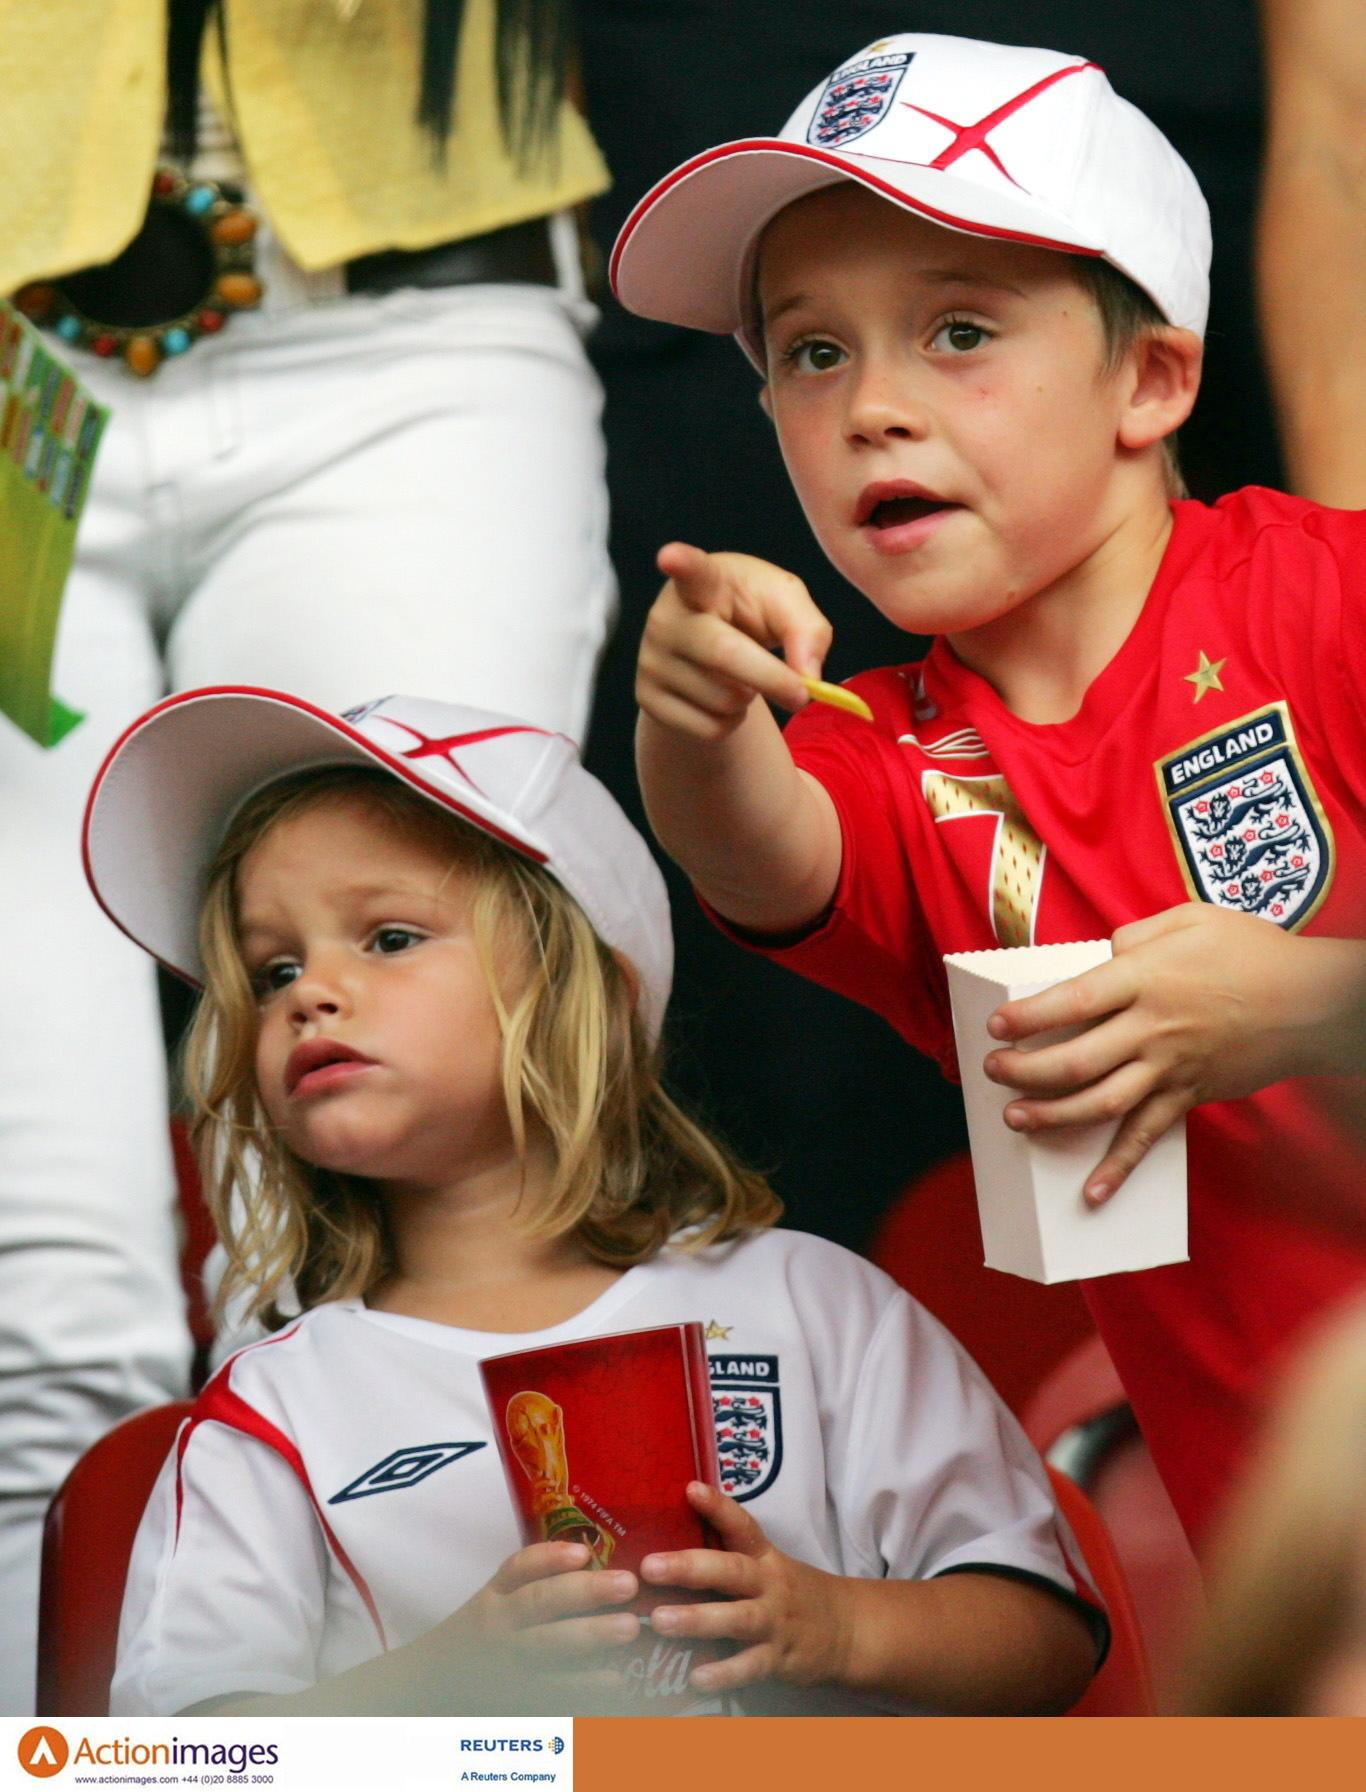 Football - England v Trinidad & Tobago 2006 FIFA World Cup Germany - Group B  - Frankenstadion, Nuremberg  - 15/6/06  England's David Beckham's kids in the crowd. Romeo (left) and Brooklyn (right0  Mandatory Credit: Action Images / Michael Regan  Livepic